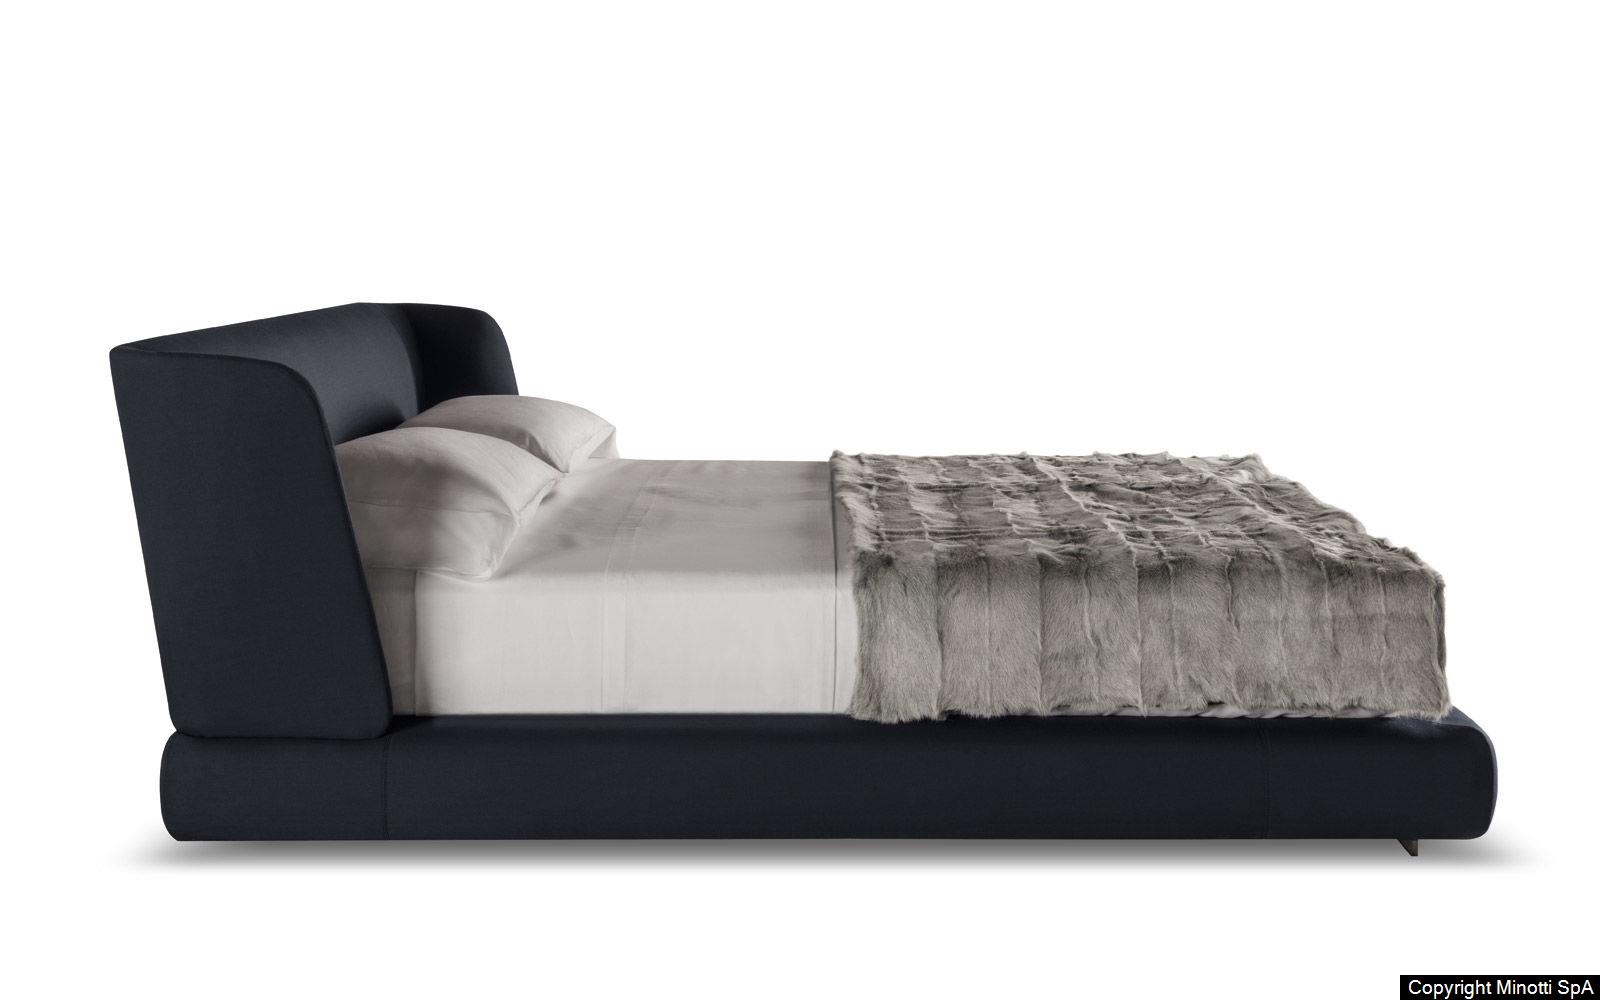 z_minotti_reeves-bed-scont